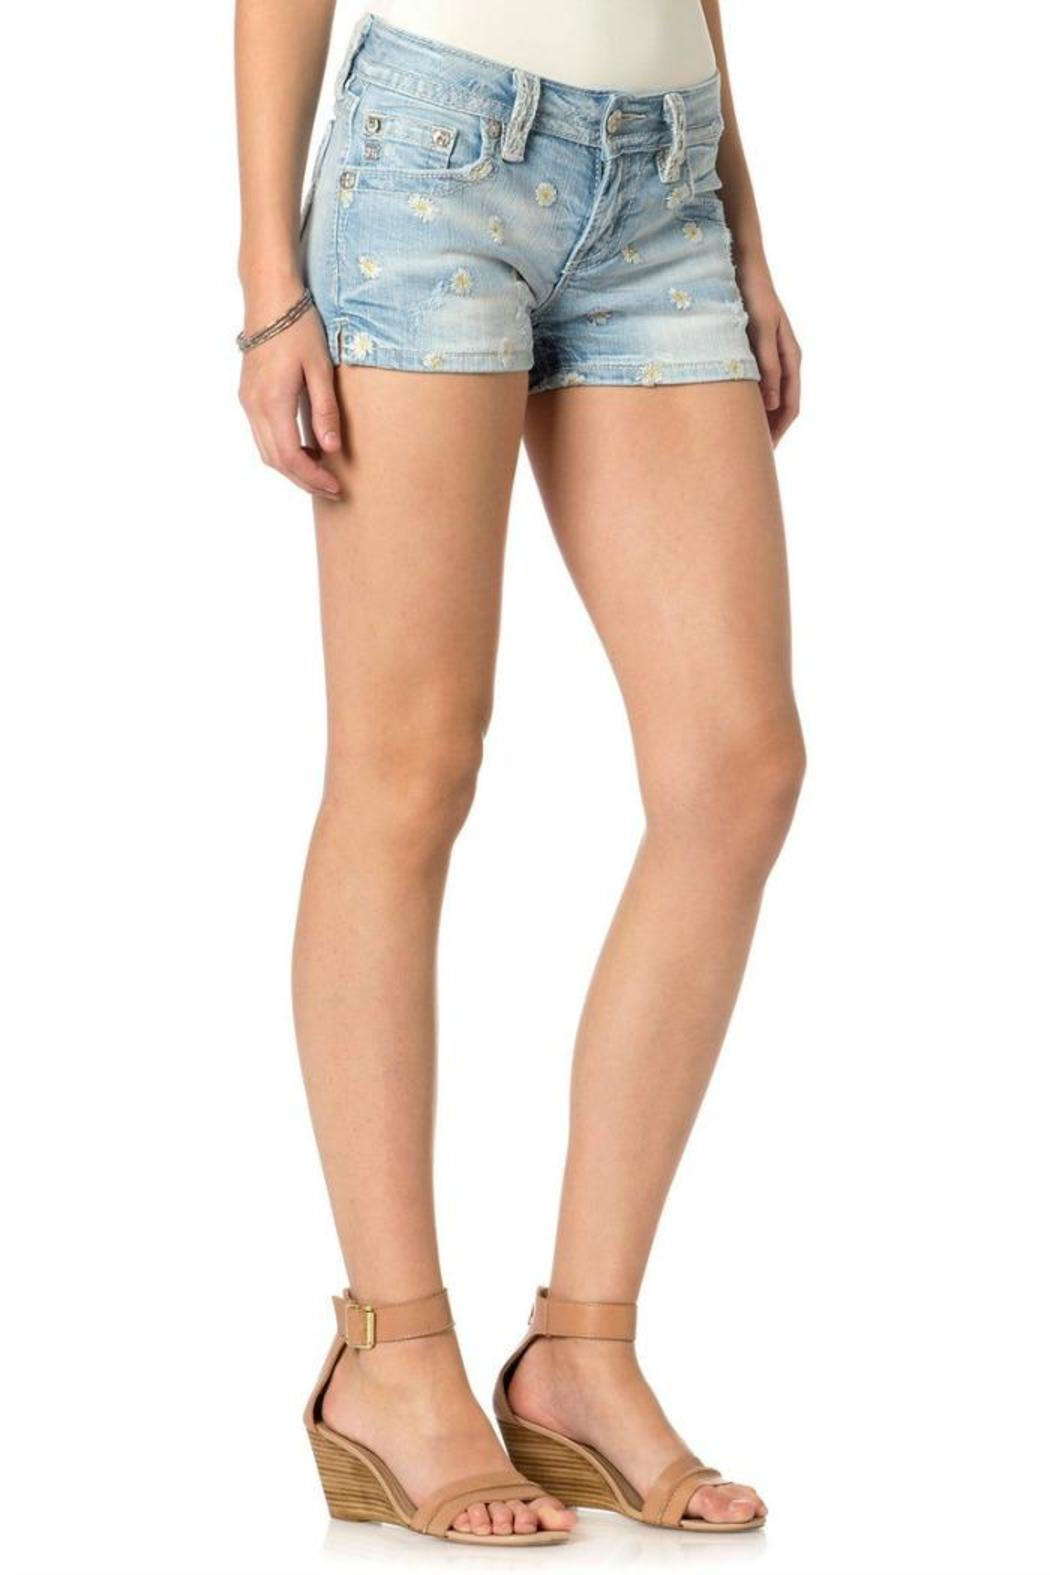 miss me flower blossom shorts from california by girls